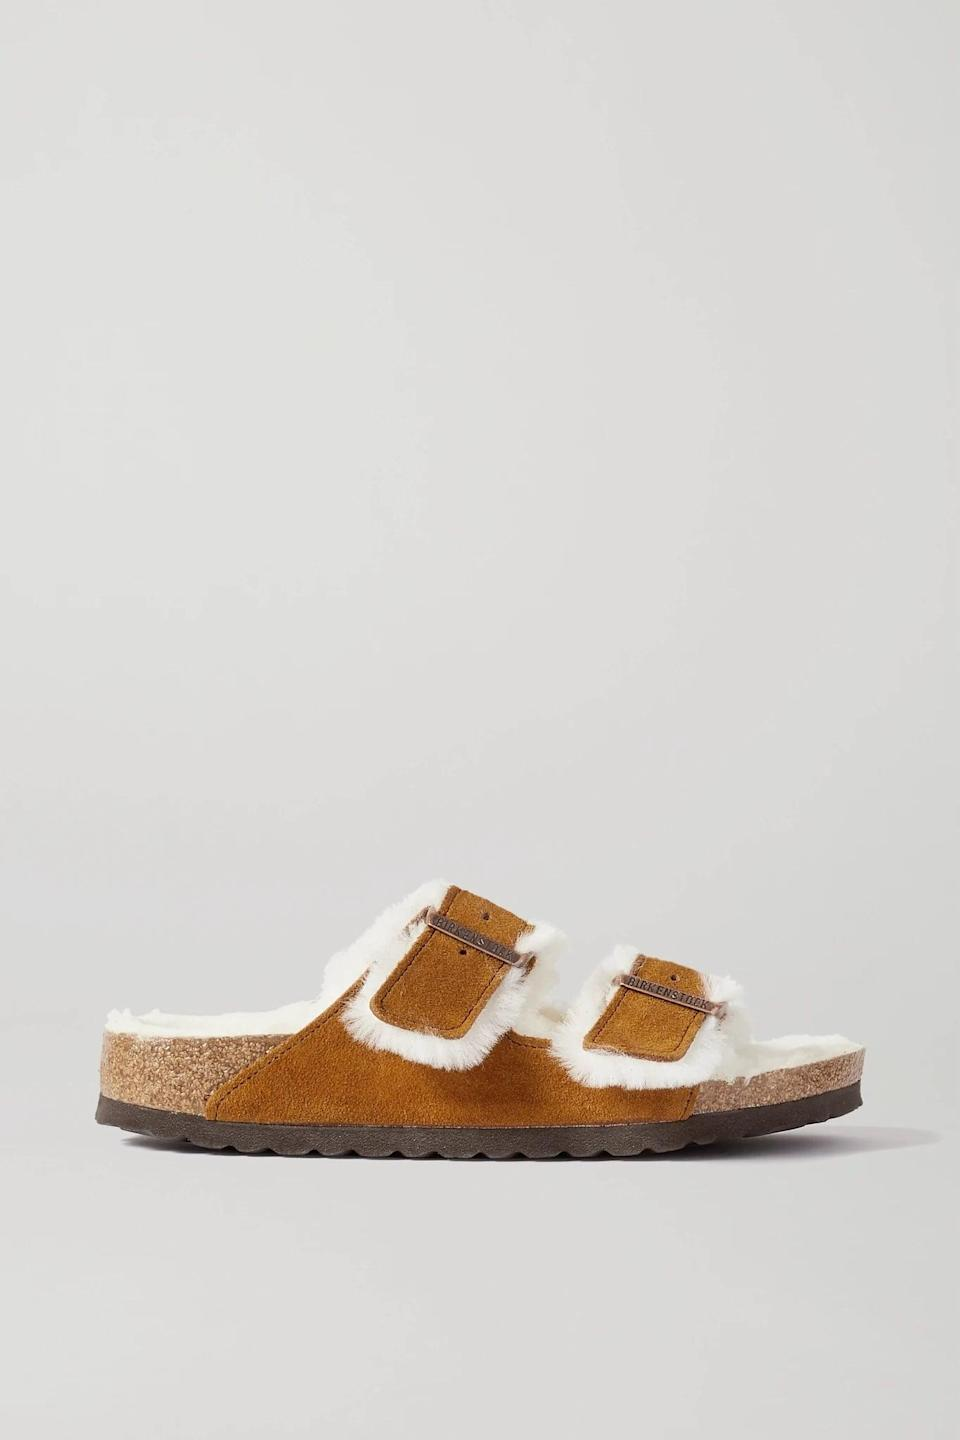 <p>Slippers are a must during the cold season, and while there are many iterations, we're currently crushing on these <span>Shearling-Lined Birkenstocks</span> ($150). Worn with thick socks, they will feel like a literal hug for her feet, and she'll never be happier than when she's wearing them around the house.</p>